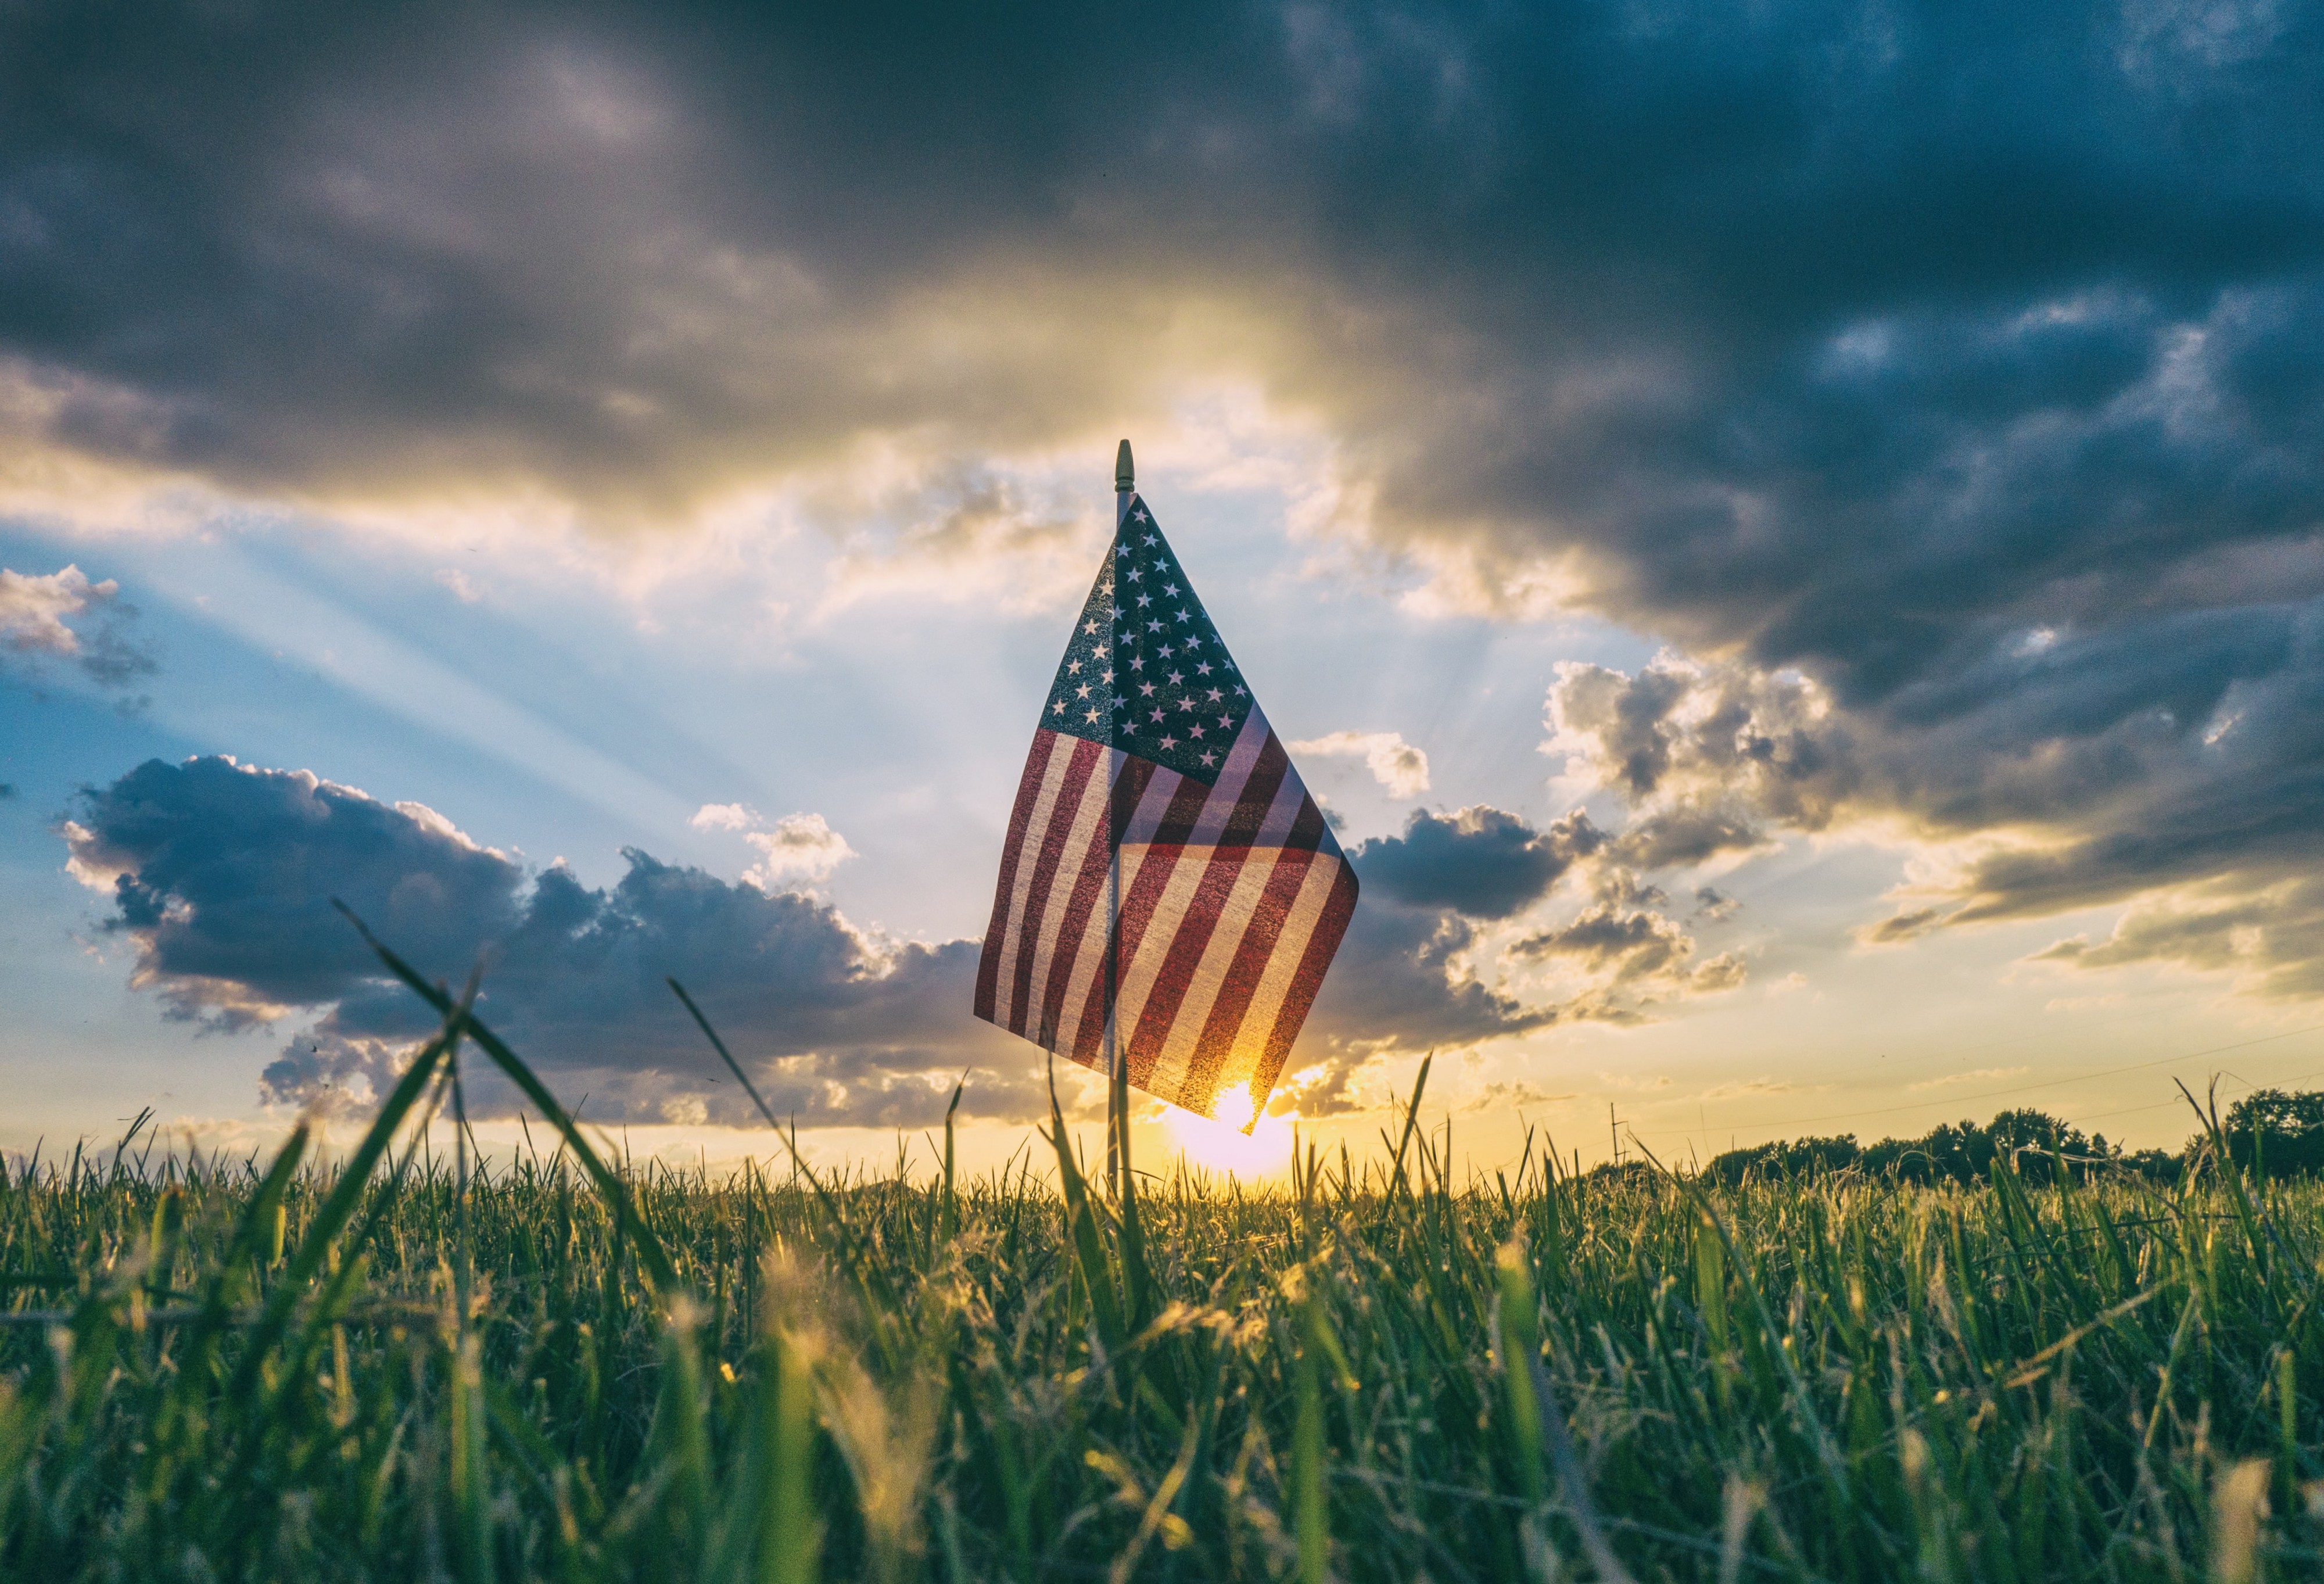 American flag in field, sun behind it, dramatic sky